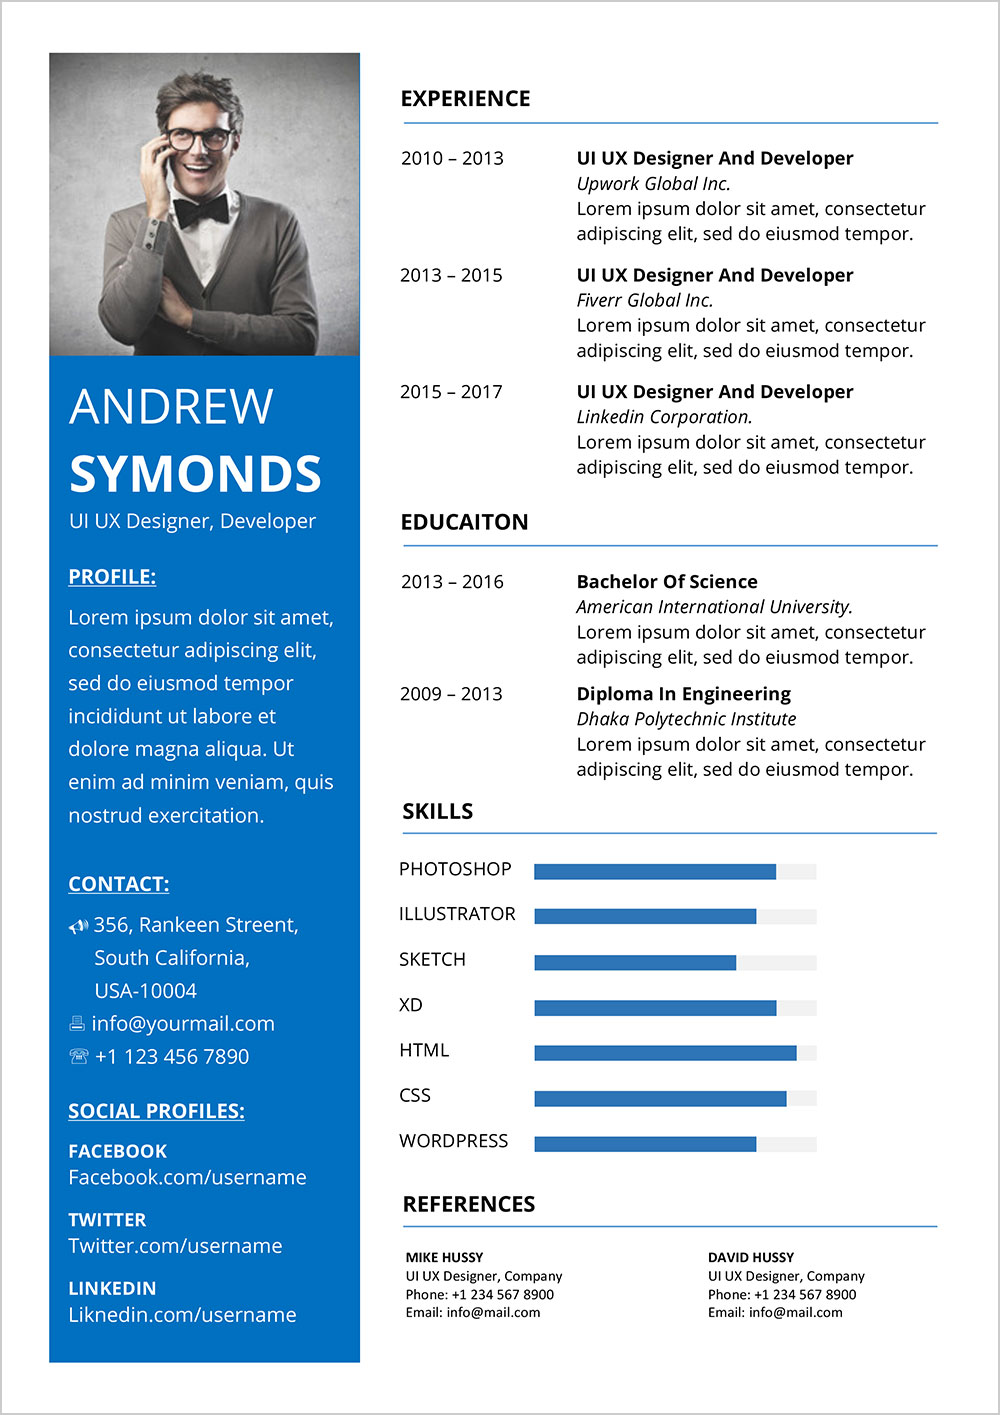 free modern resume template in word format good contemporary templates account executive Resume Contemporary Resume Templates Free Word